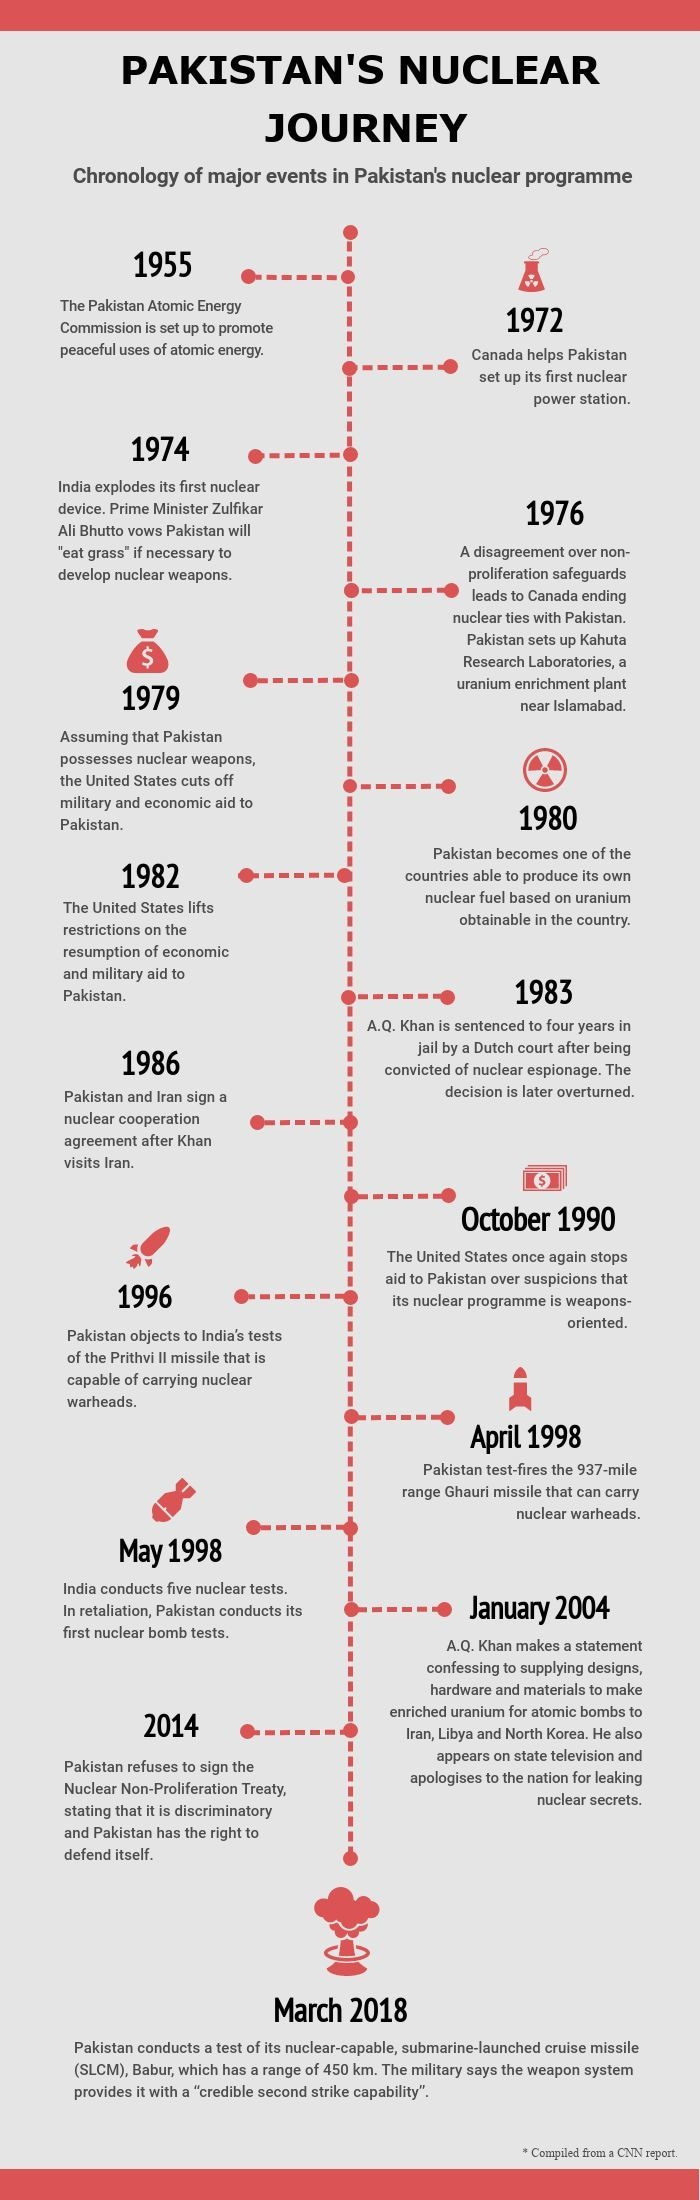 Pakistan's nuclear journey